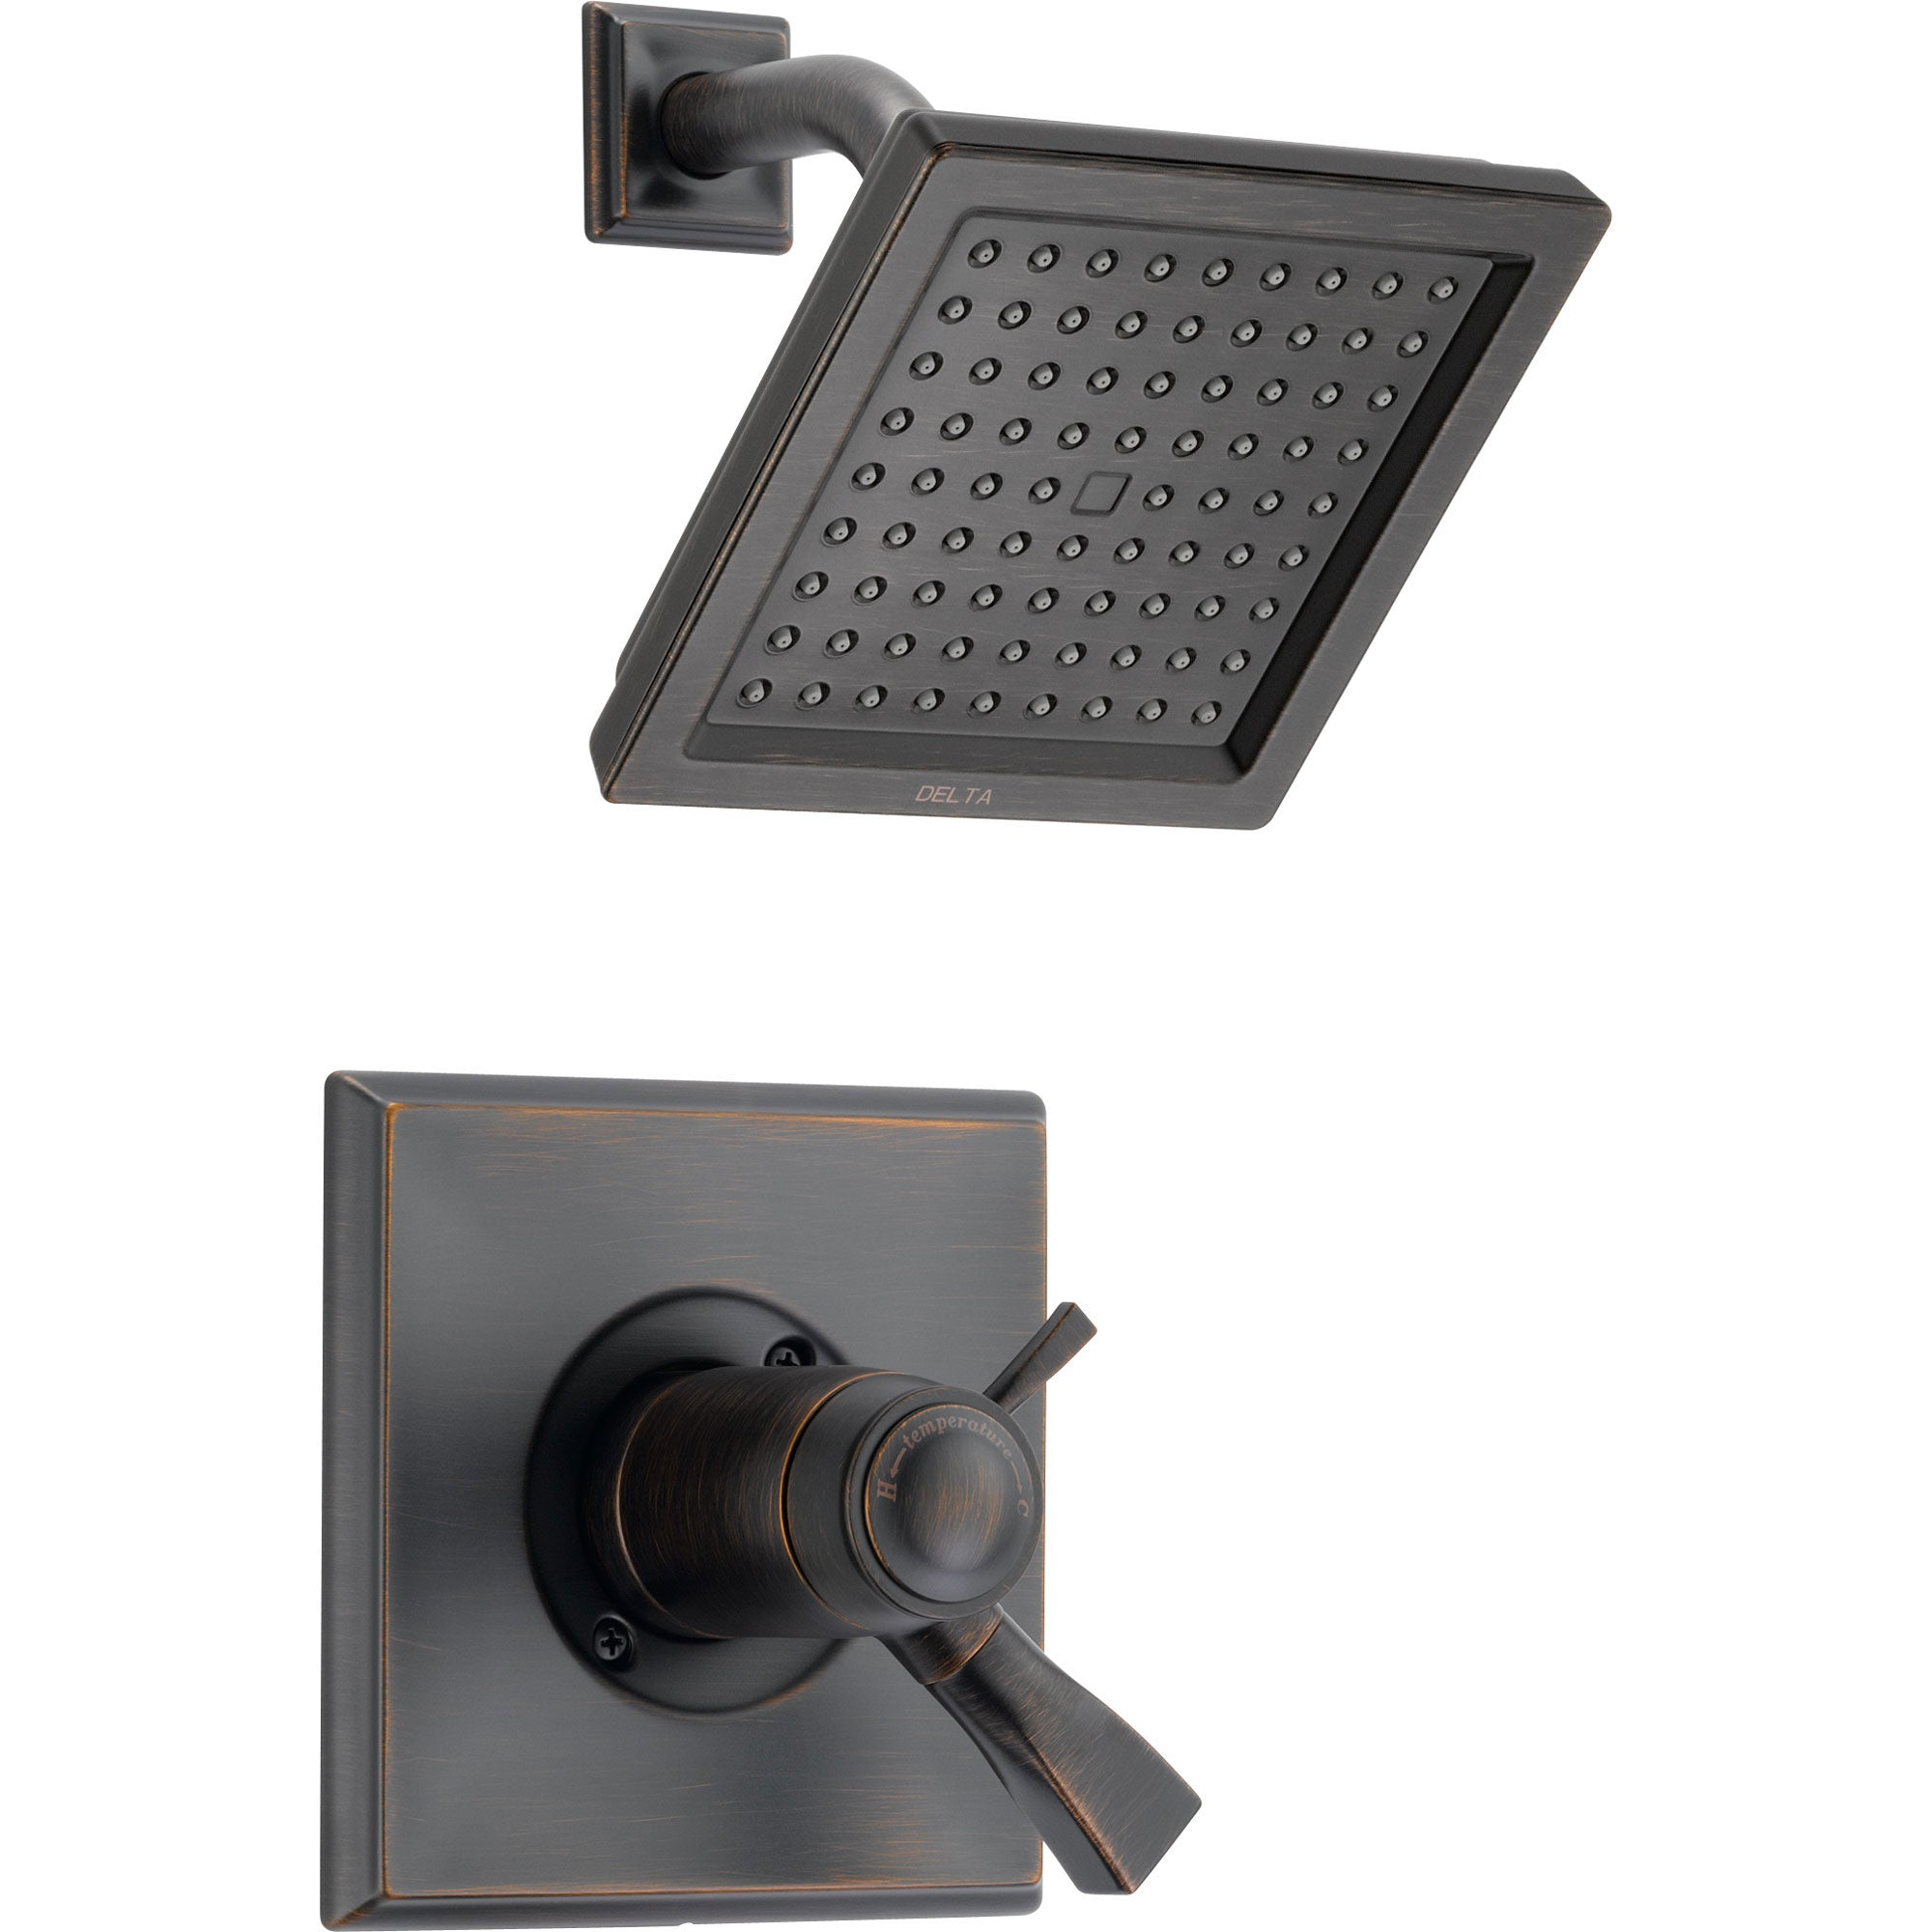 Delta Dryden Venetian Bronze Modern Thermostatic Shower Control Trim Kit 457081